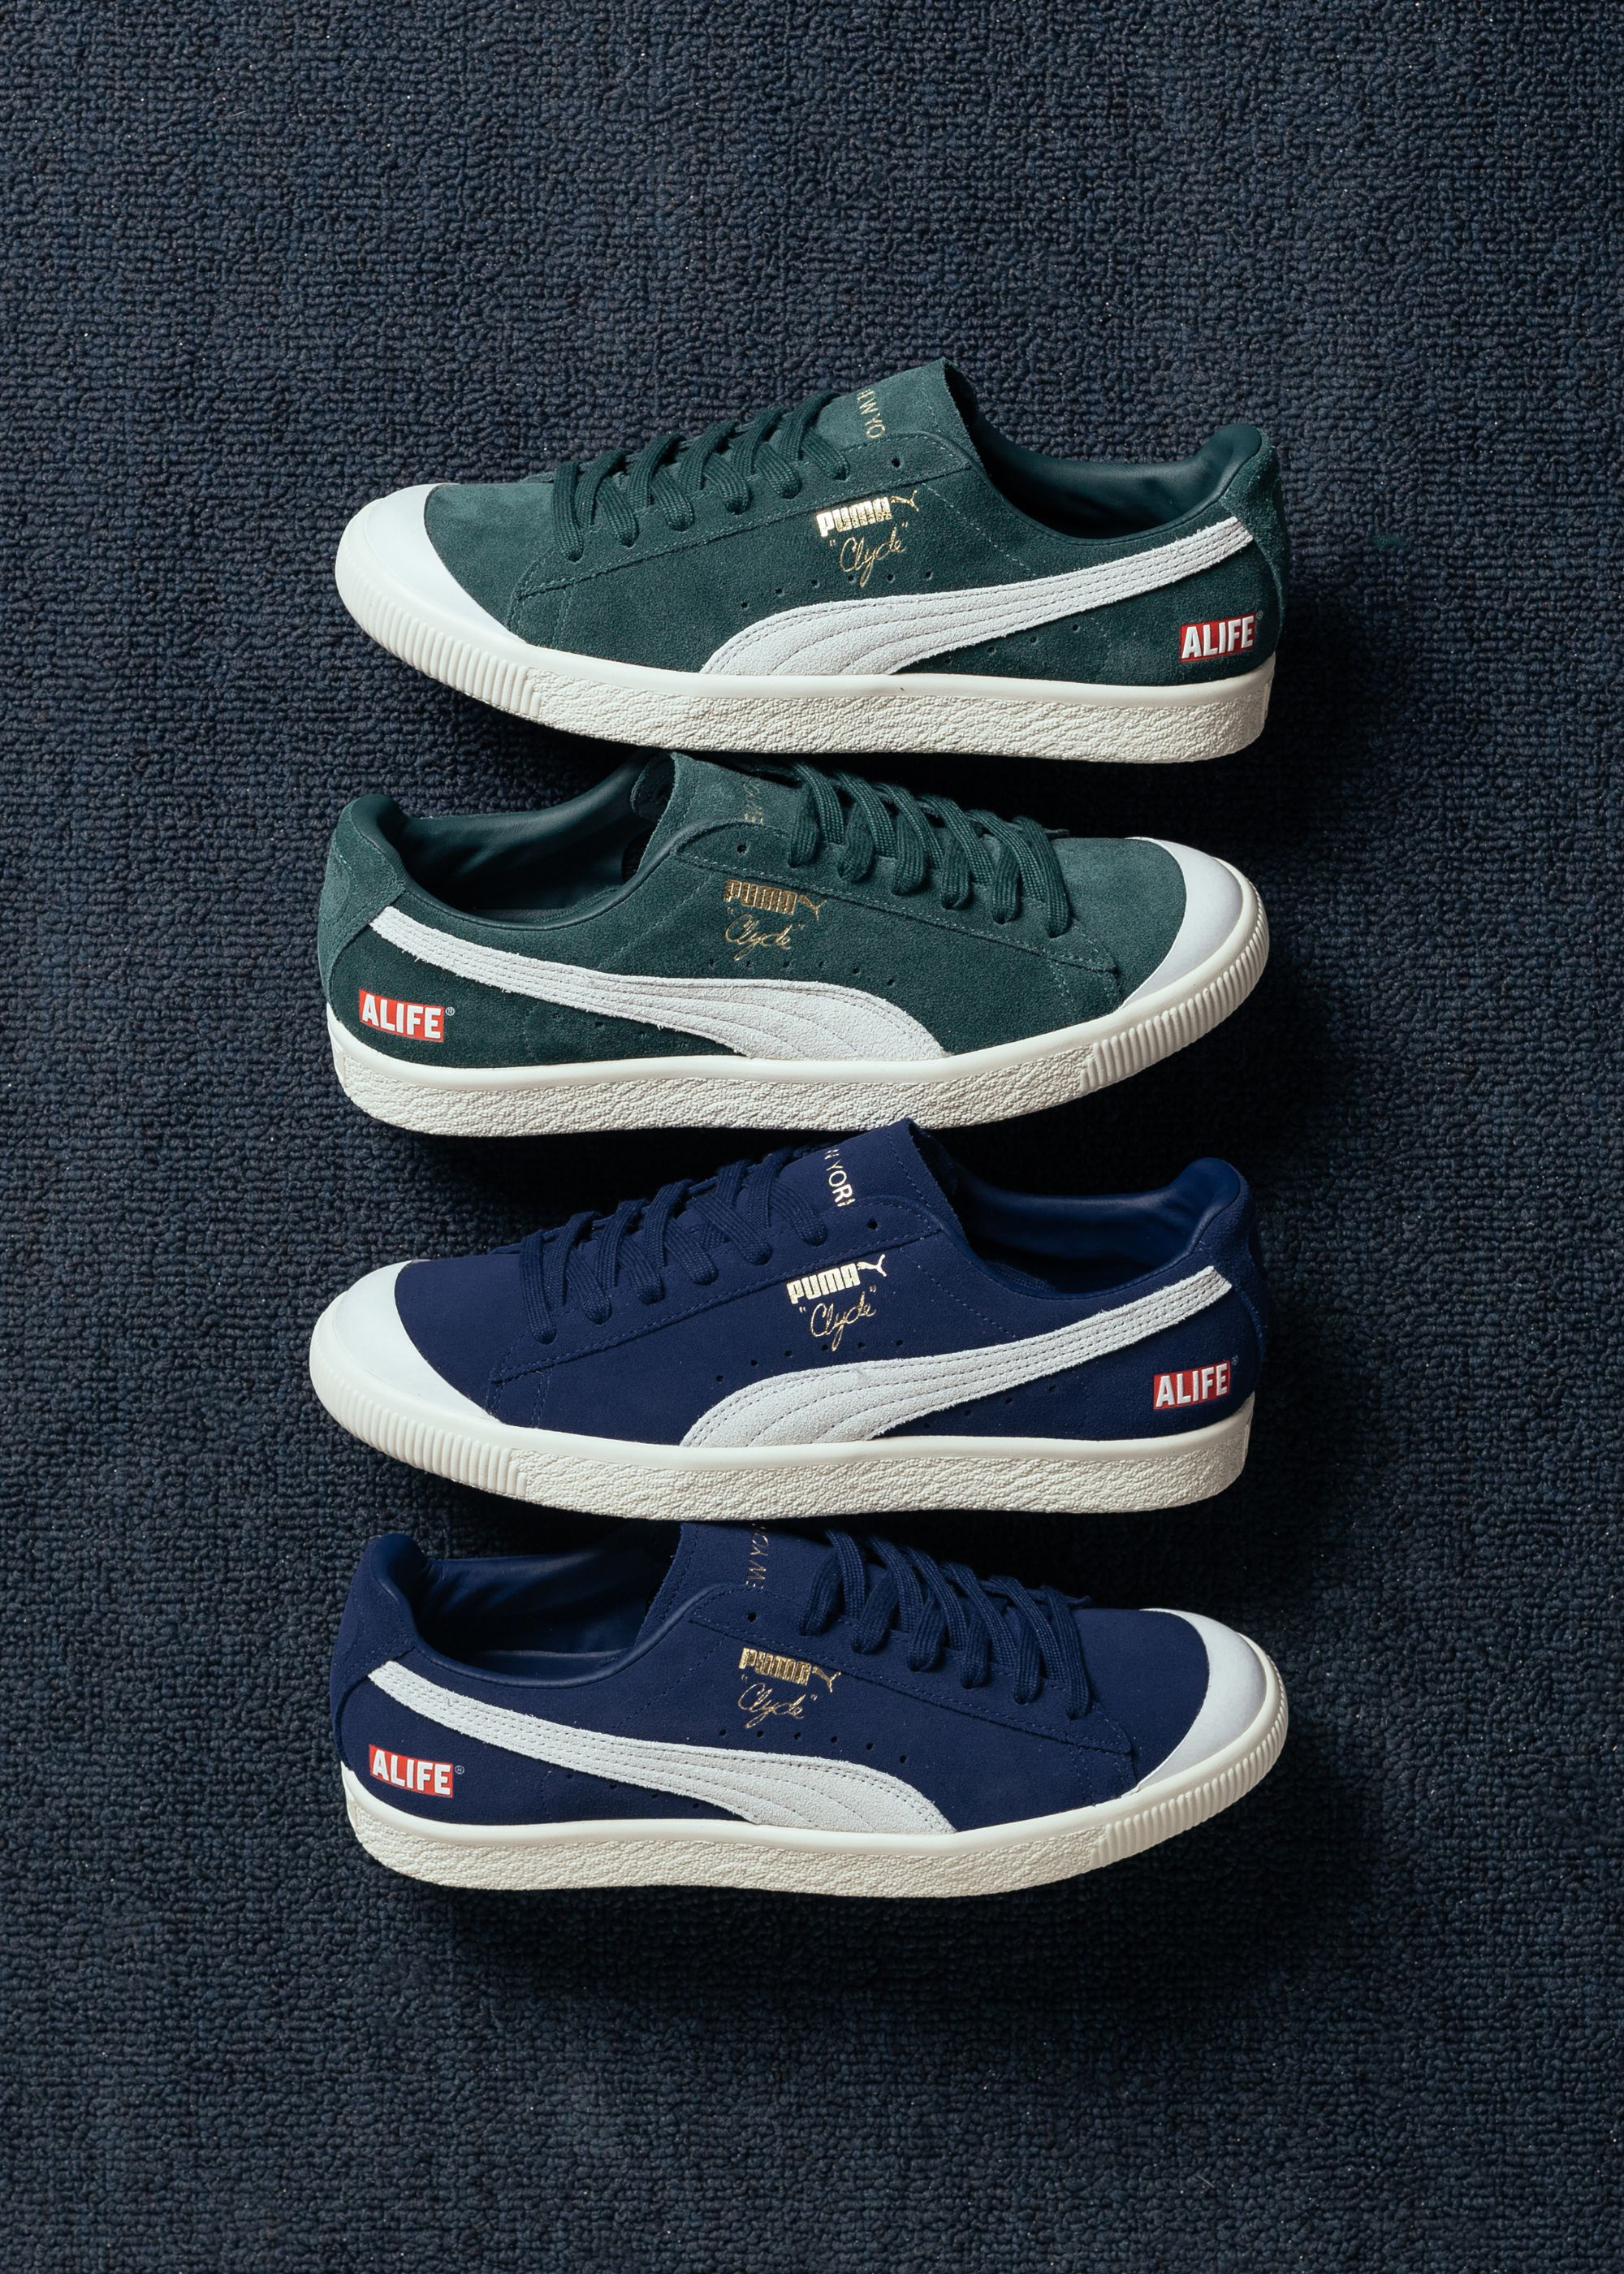 brand new 1fb5c 52a48 Puma x Alife Clyde RT | All Things Good in 2019 | Sneakers ...